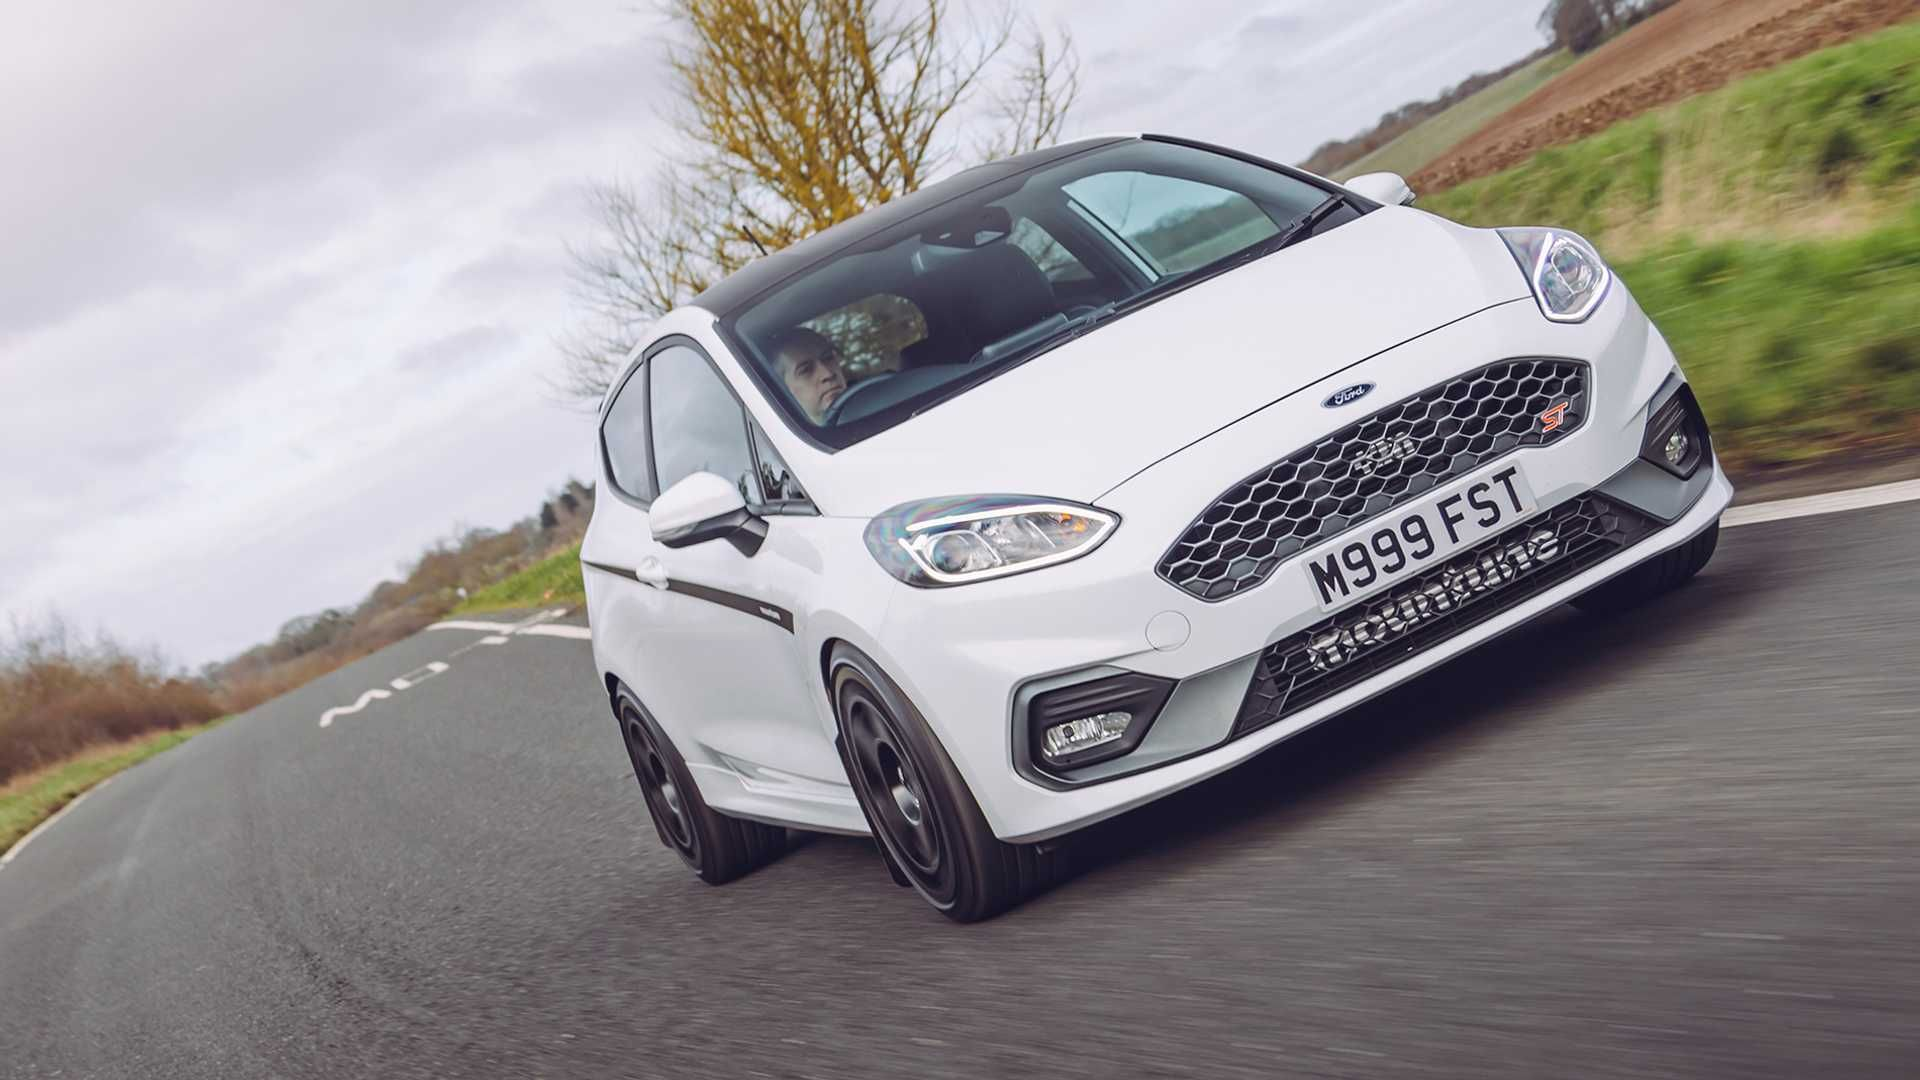 Check Out The Customized Ford Fiesta St Mountune M235 That Delivers 232 Horsepower In 2020 Ford Fiesta St Ford Fiesta Fiesta St